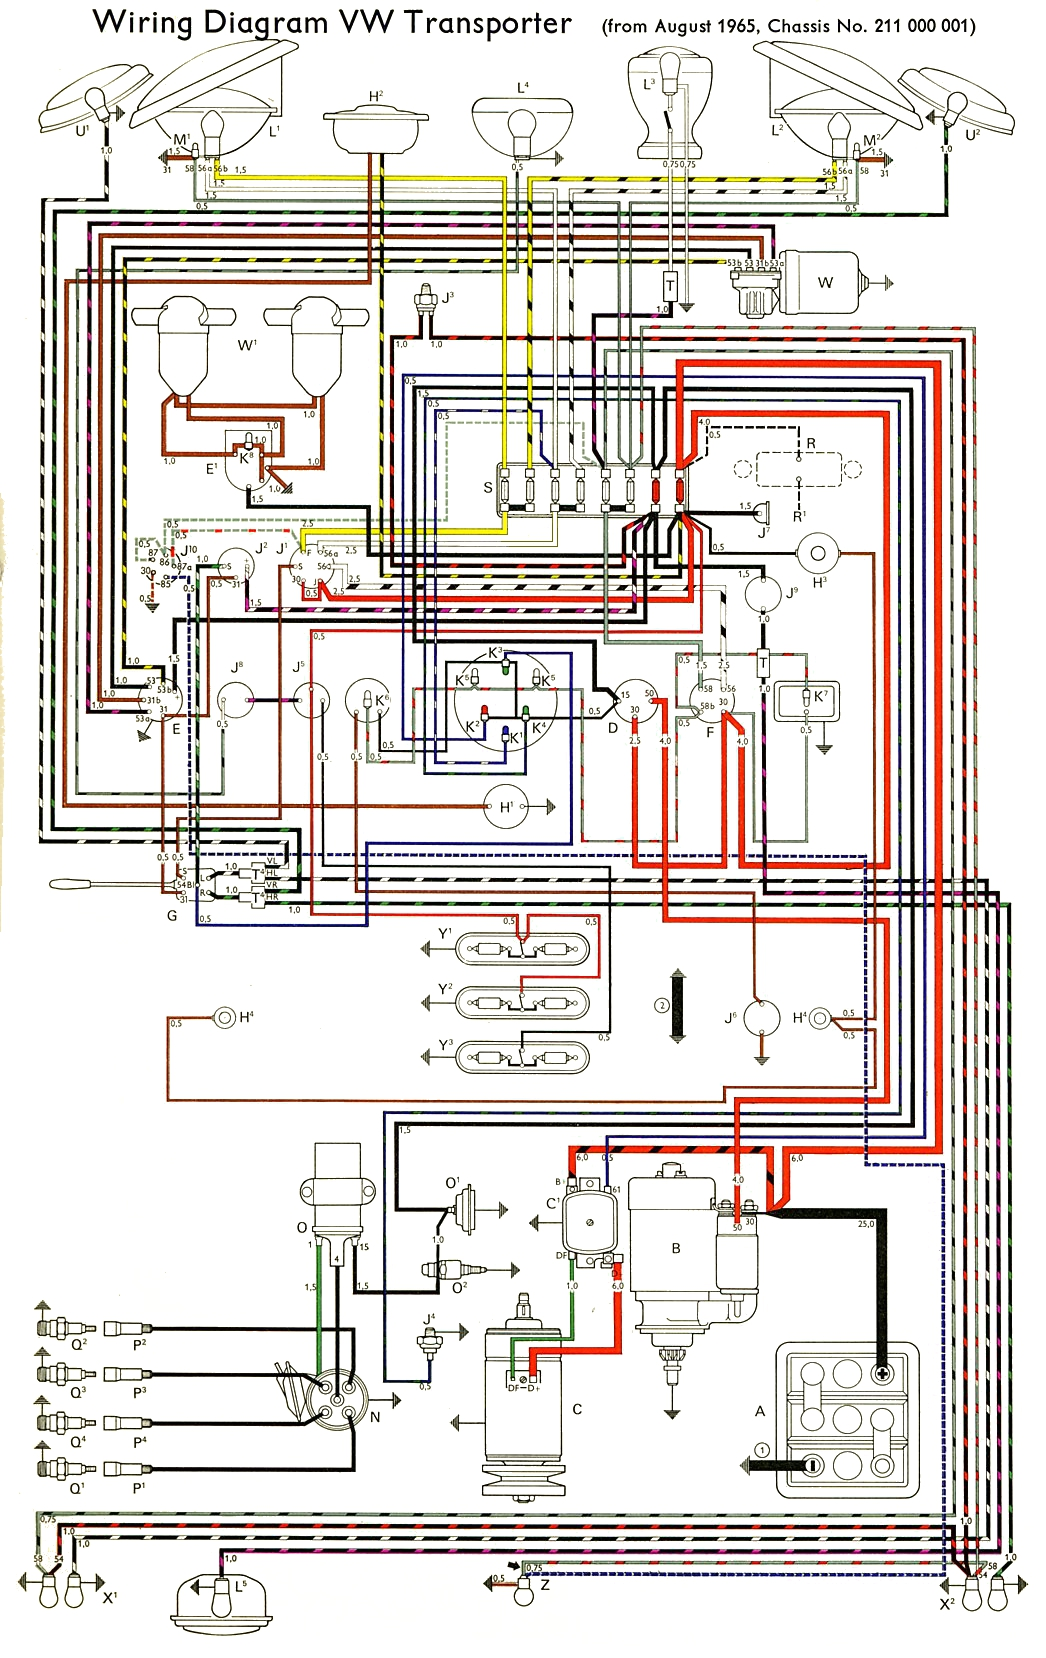 thesamba com type 2 wiring diagrams rh thesamba com VW Bug Wiring-Diagram 67 VW Beetle Wiring Diagram